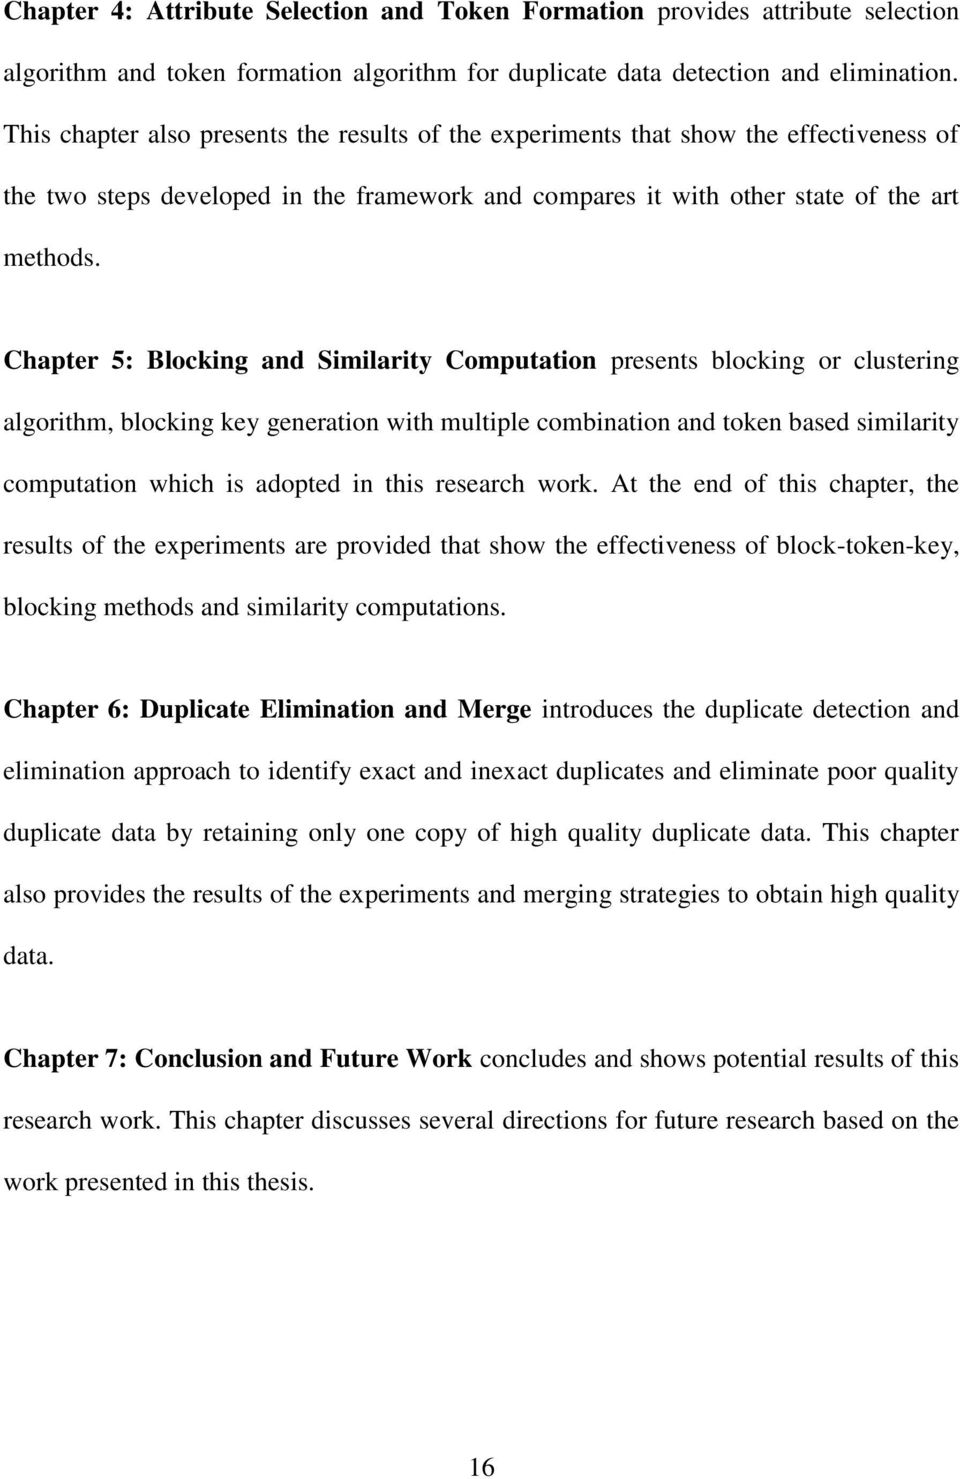 Chapter 5: Blocking and Similarity Computation presents blocking or clustering algorithm, blocking key generation with multiple combination and token based similarity computation which is adopted in